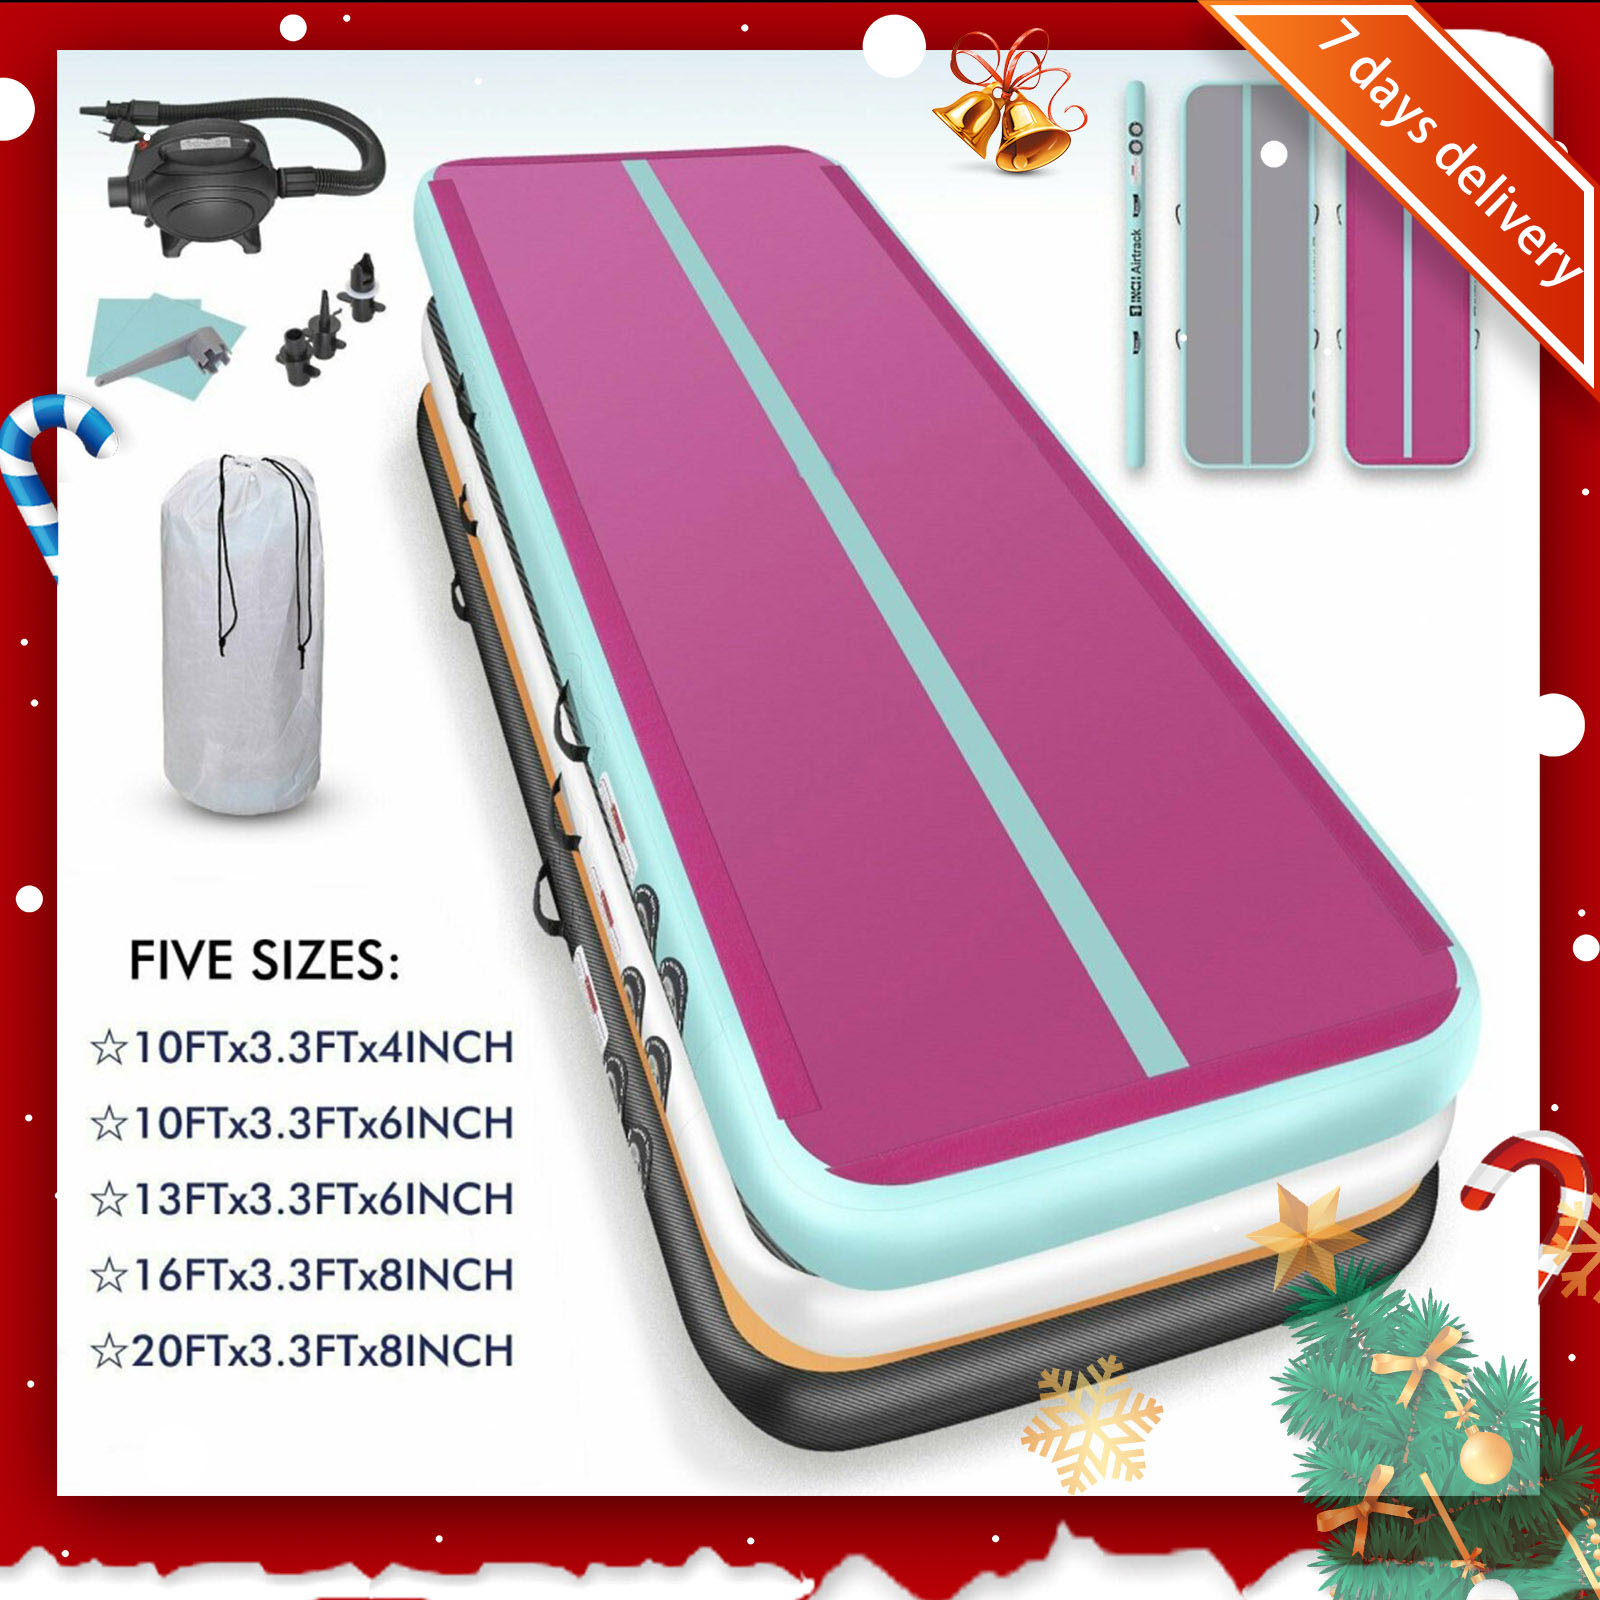 Rimdoc 6M*0.2M Gymnastics Mats Inflatable Air Track Tumbling Airtrack Yoga Mat For Water Yoga/Cheerleading/Training For Home Use